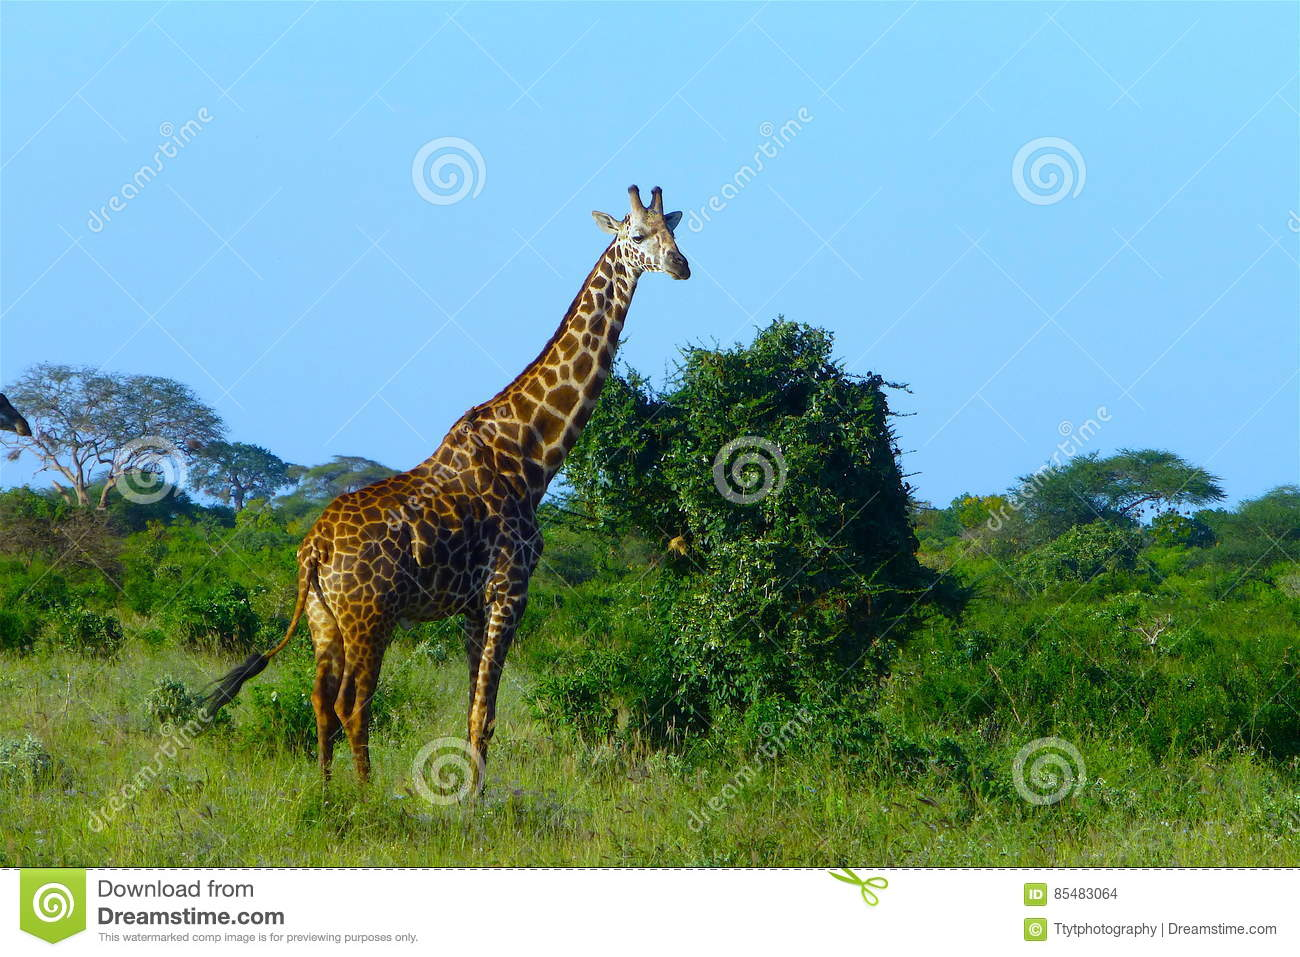 Bello animale del Kenya - la giraffa